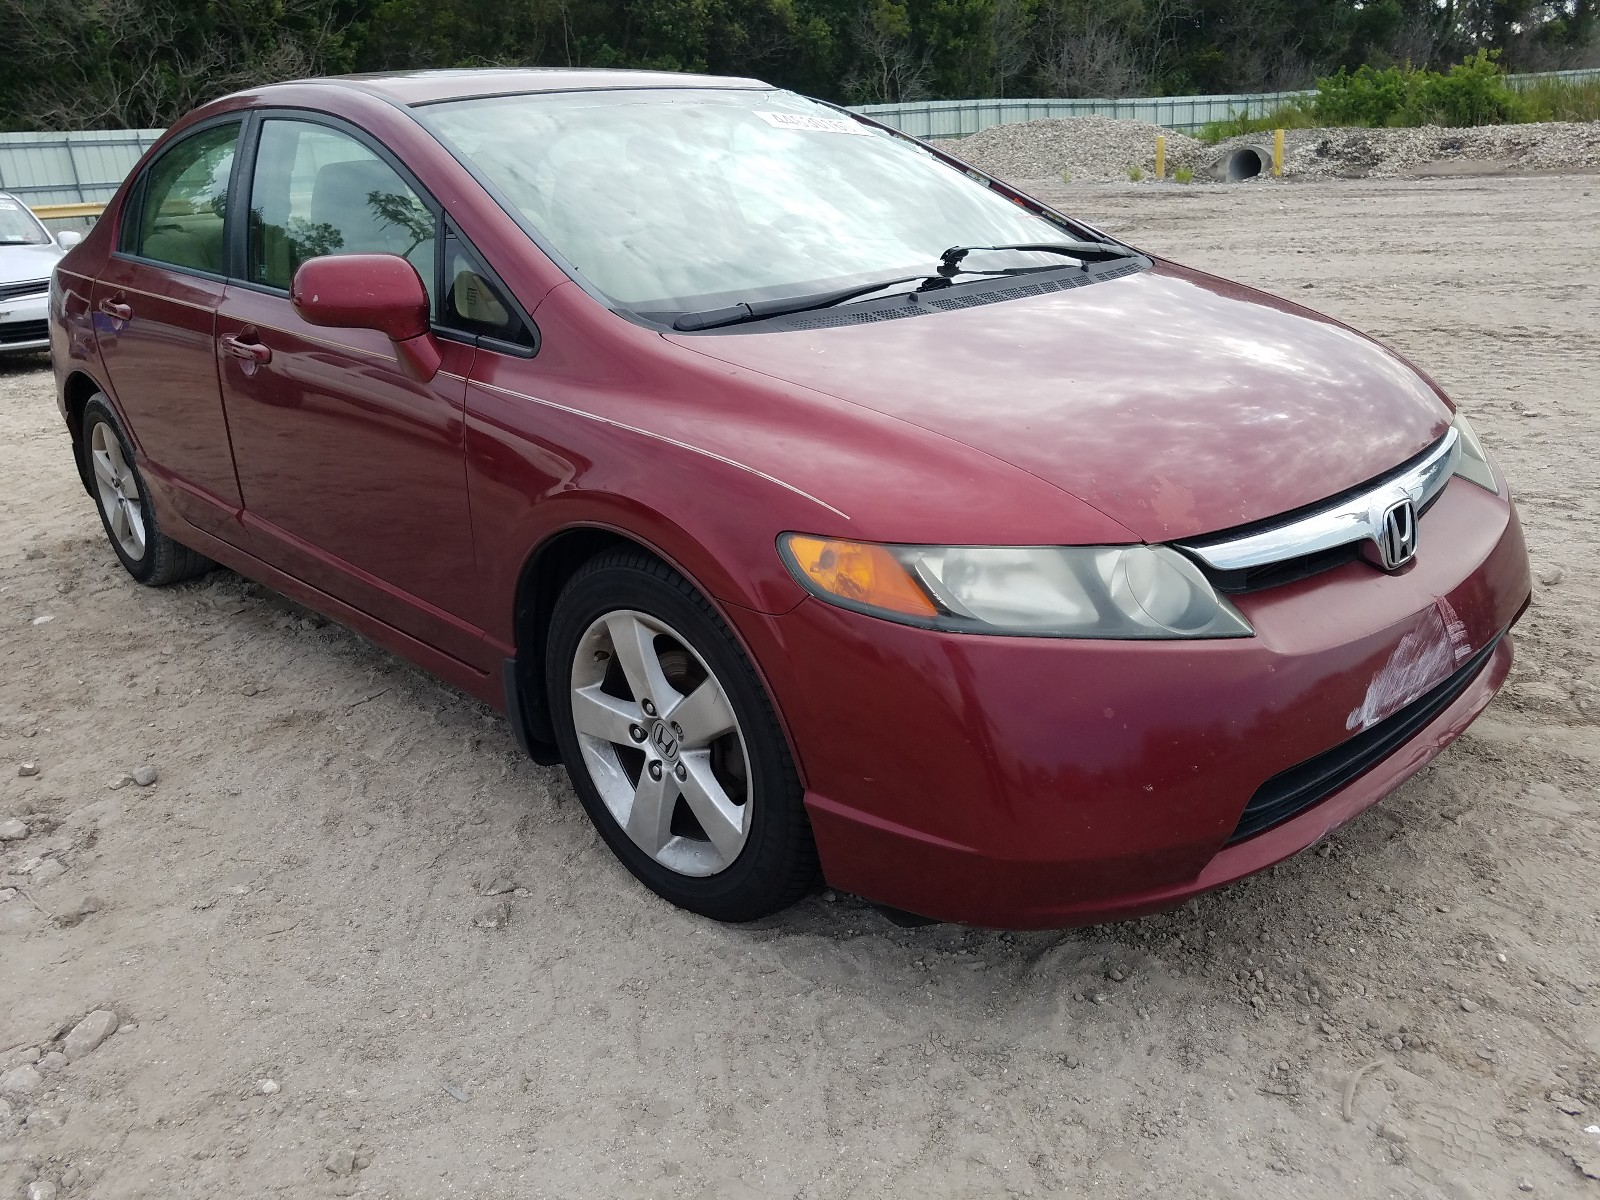 2008 Honda Civic Ex For Sale At Copart Riverview Fl Lot 44630160 Salvagereseller Com